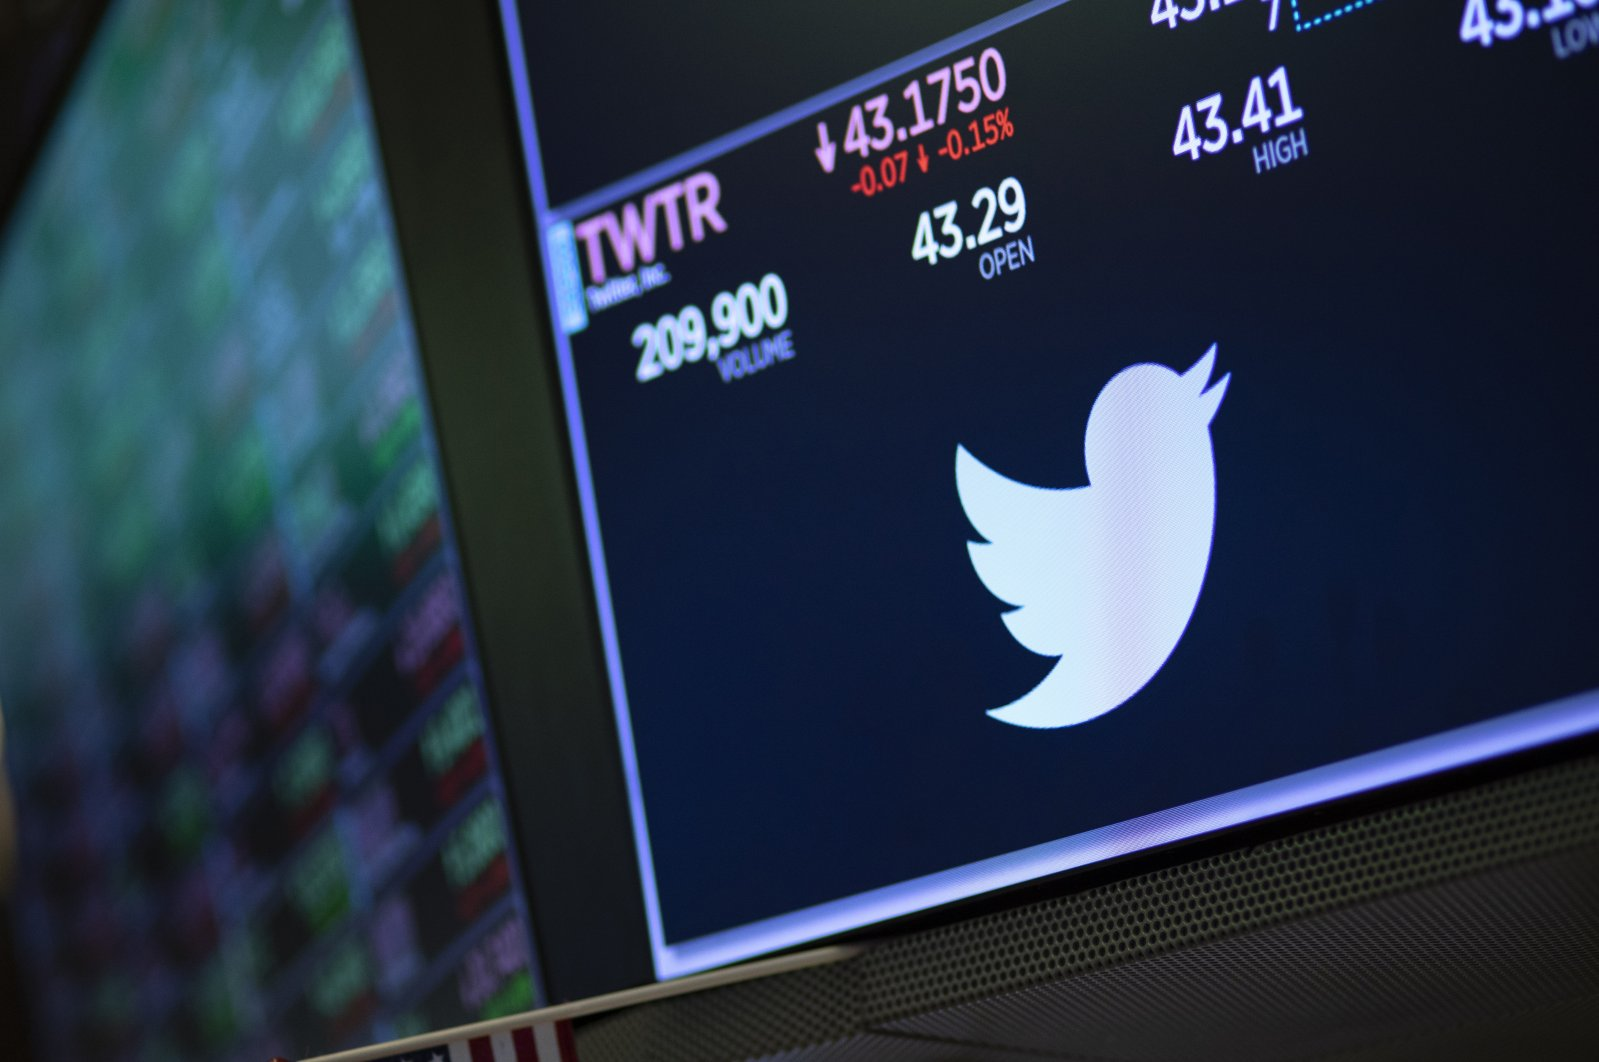 A screen shows the price of Twitter stock at the New York Stock Exchange, Sept. 18, 2019. (AP Photo)